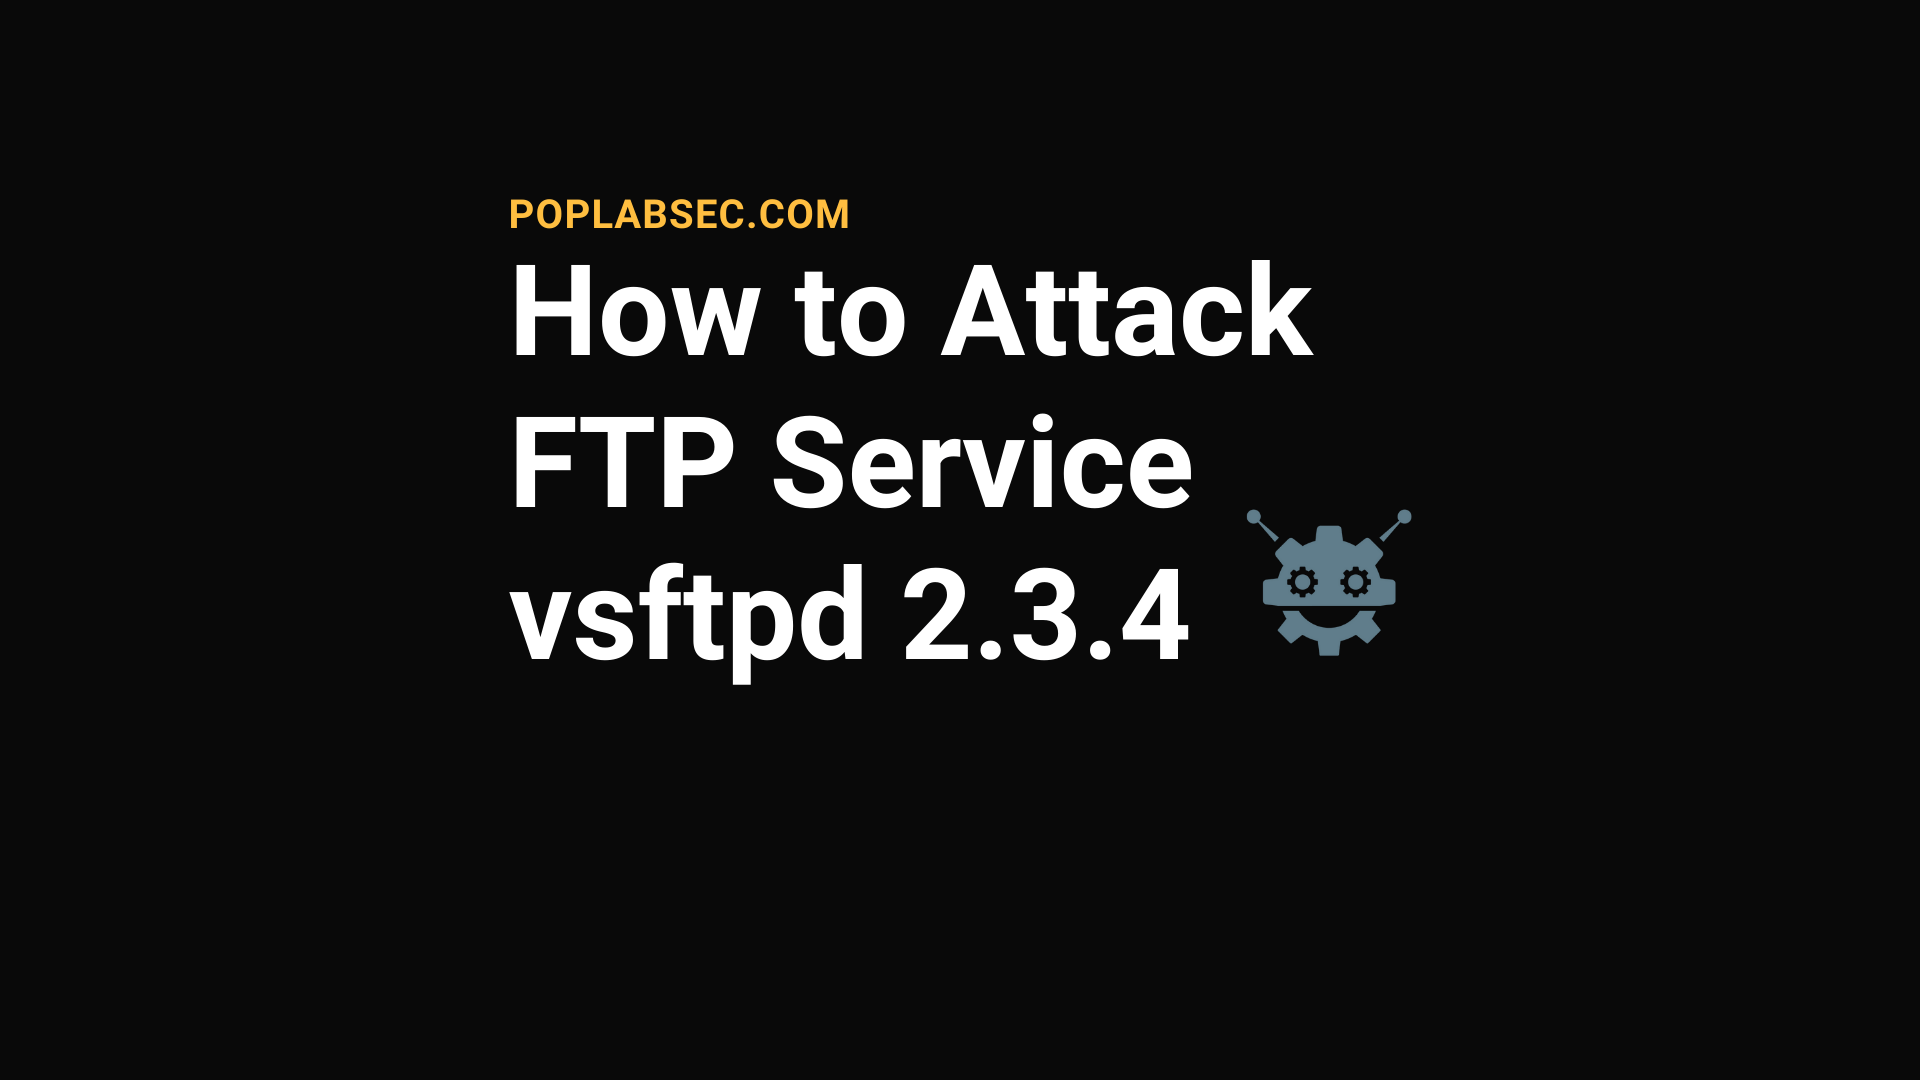 How to Attack FTP Service vsftpd 2.3.4